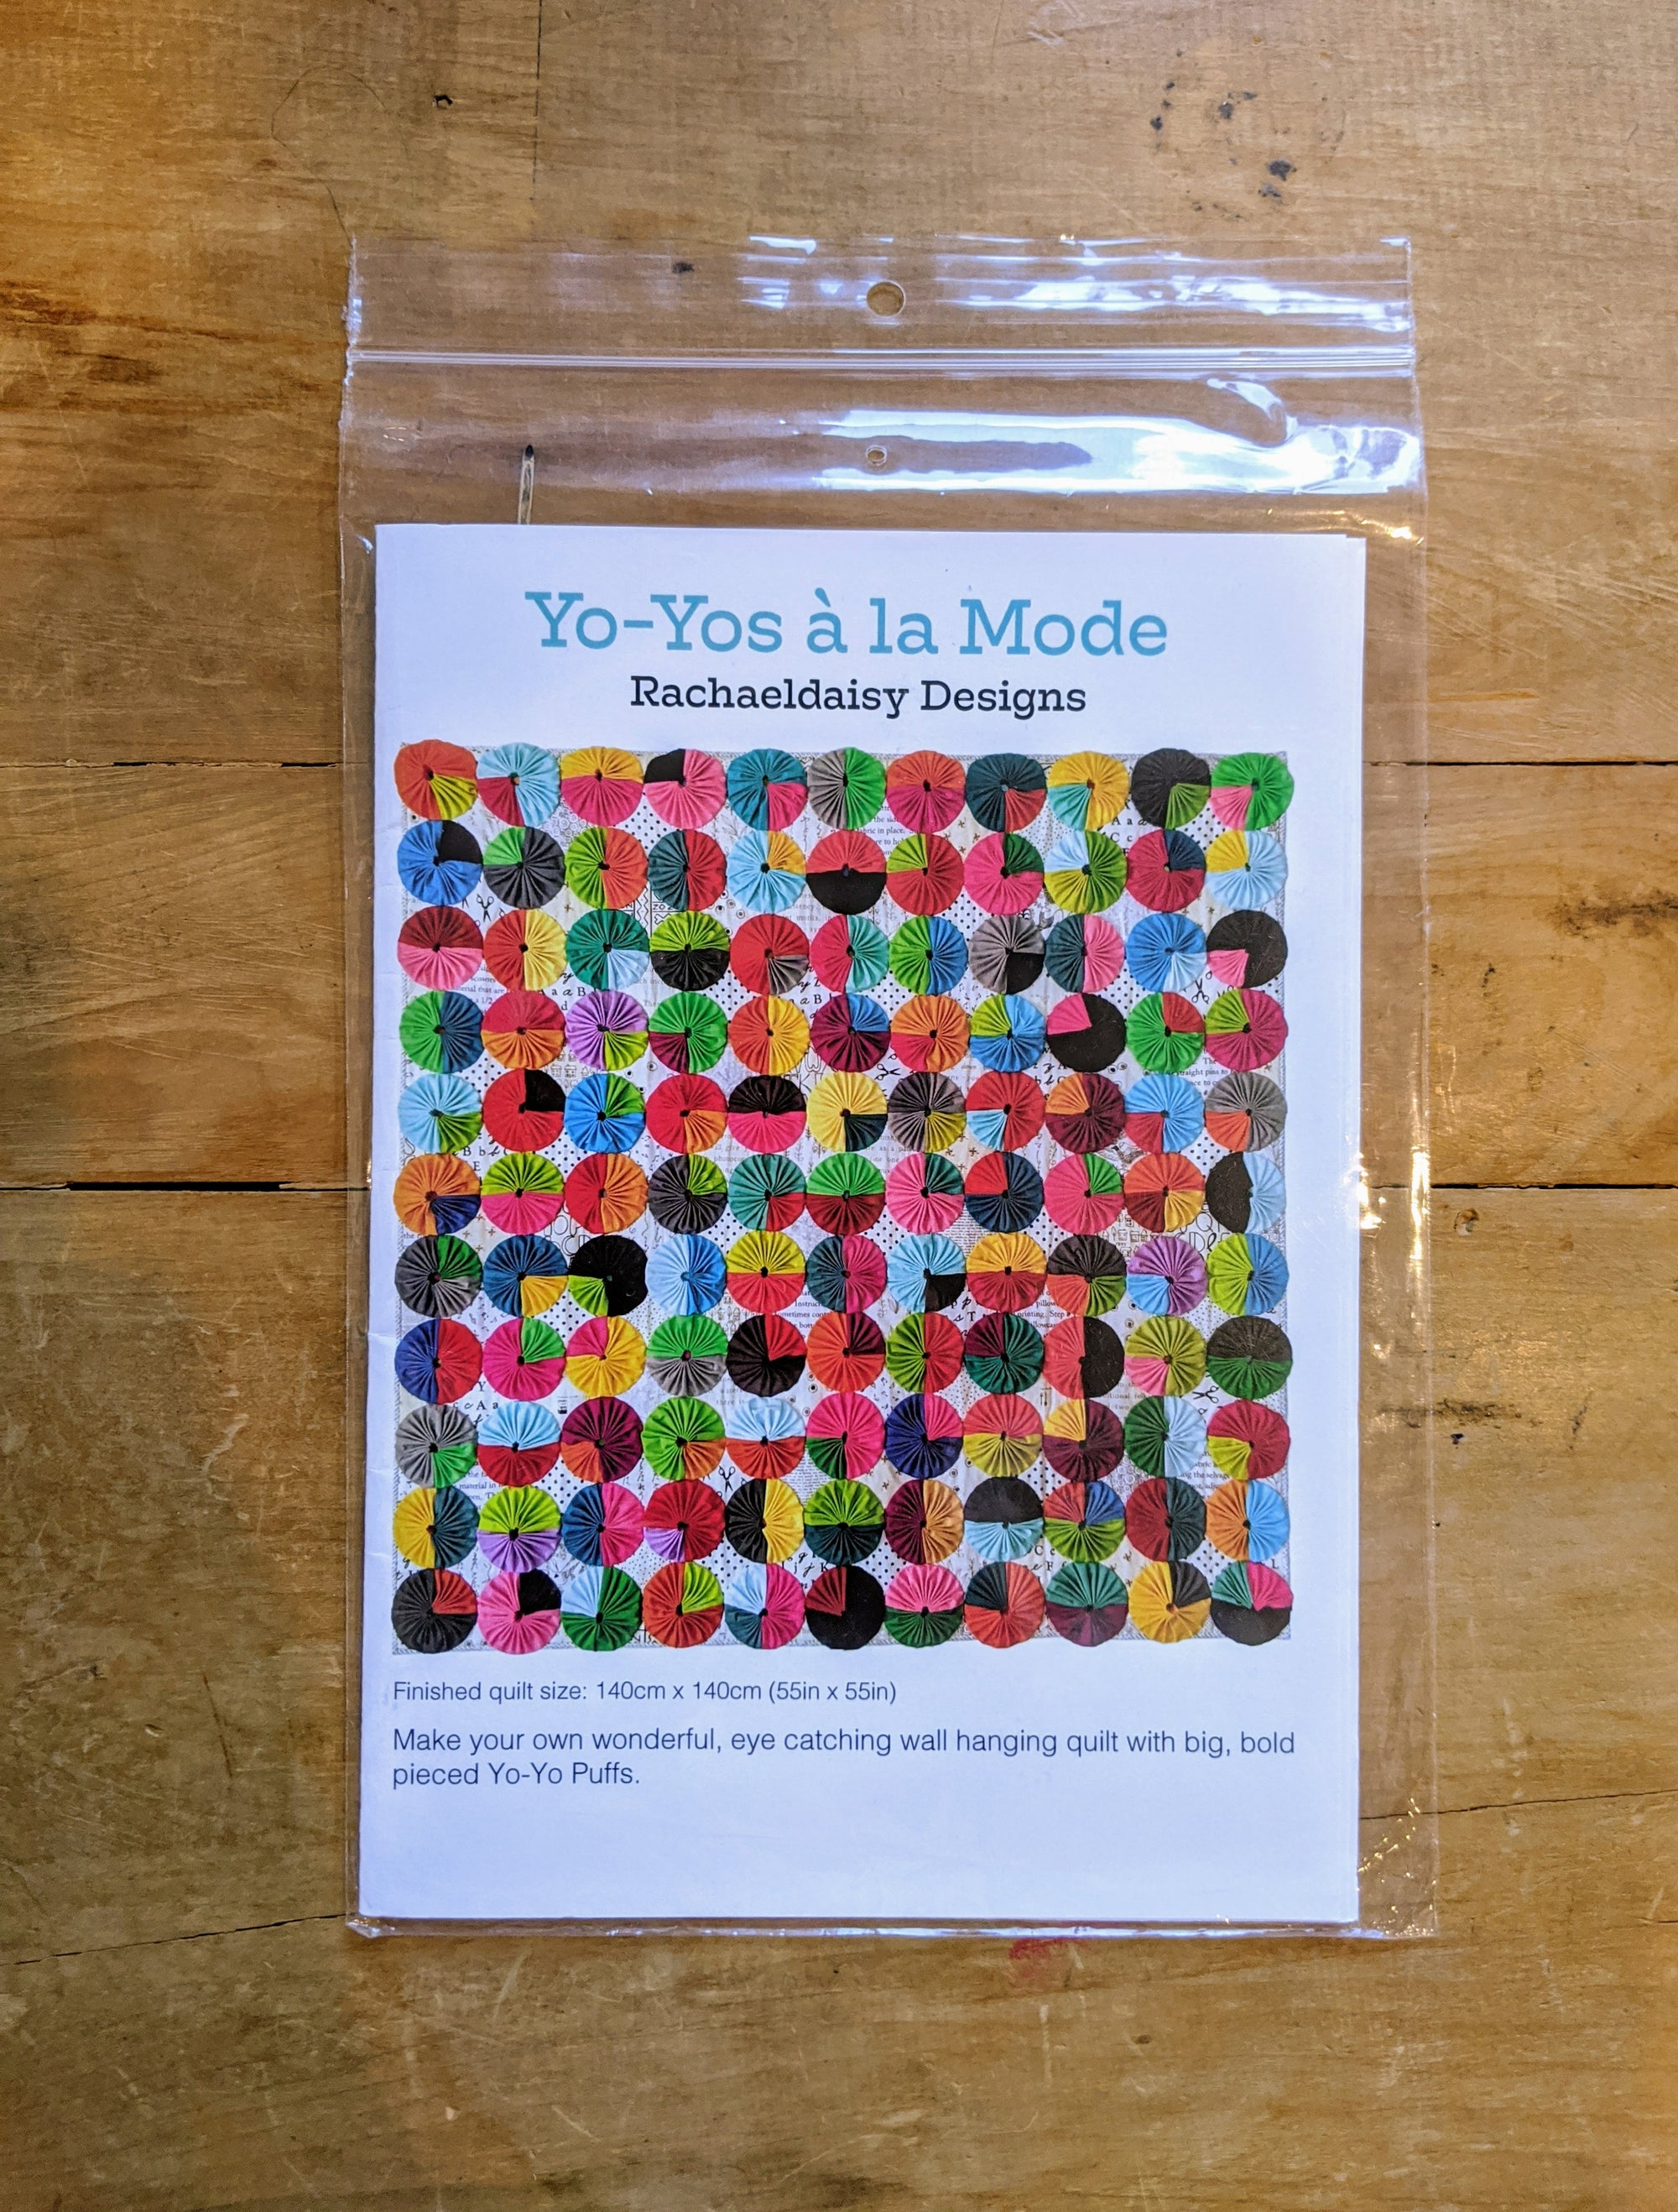 Yo-Yos a la Mode by Rachael Daisy